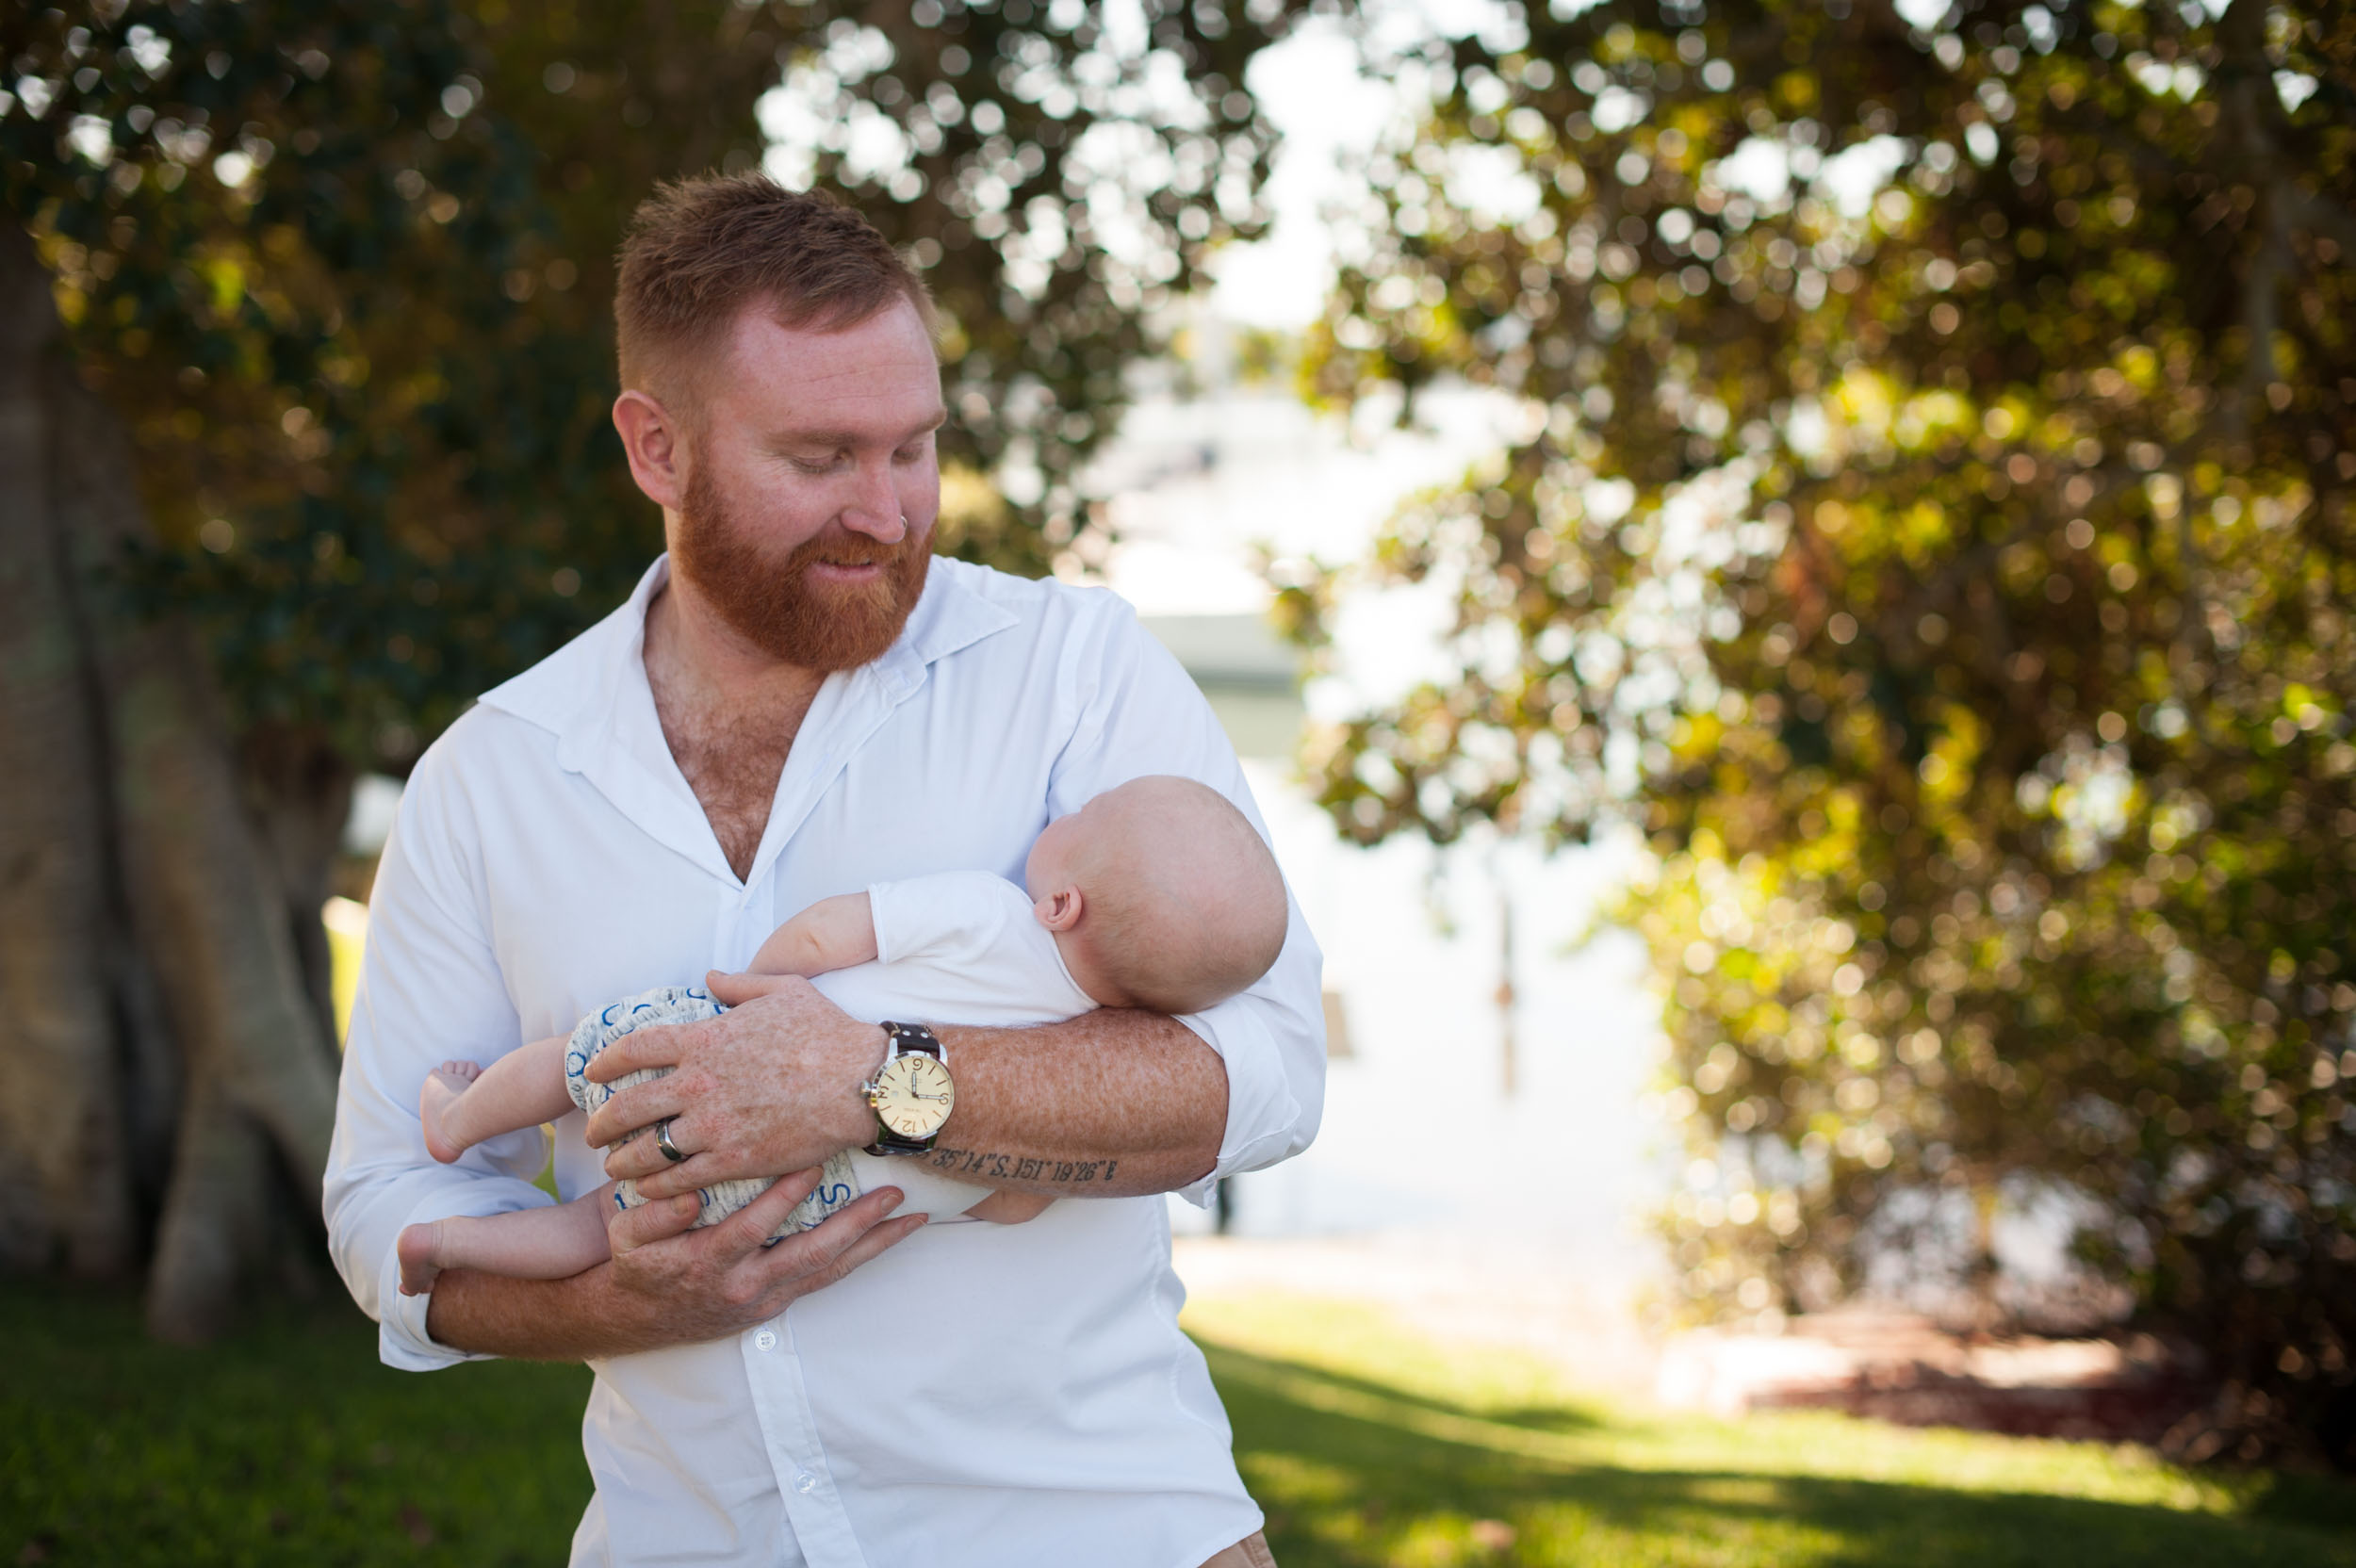 cuddles with daddy outdoor nature photography woy woy nsw